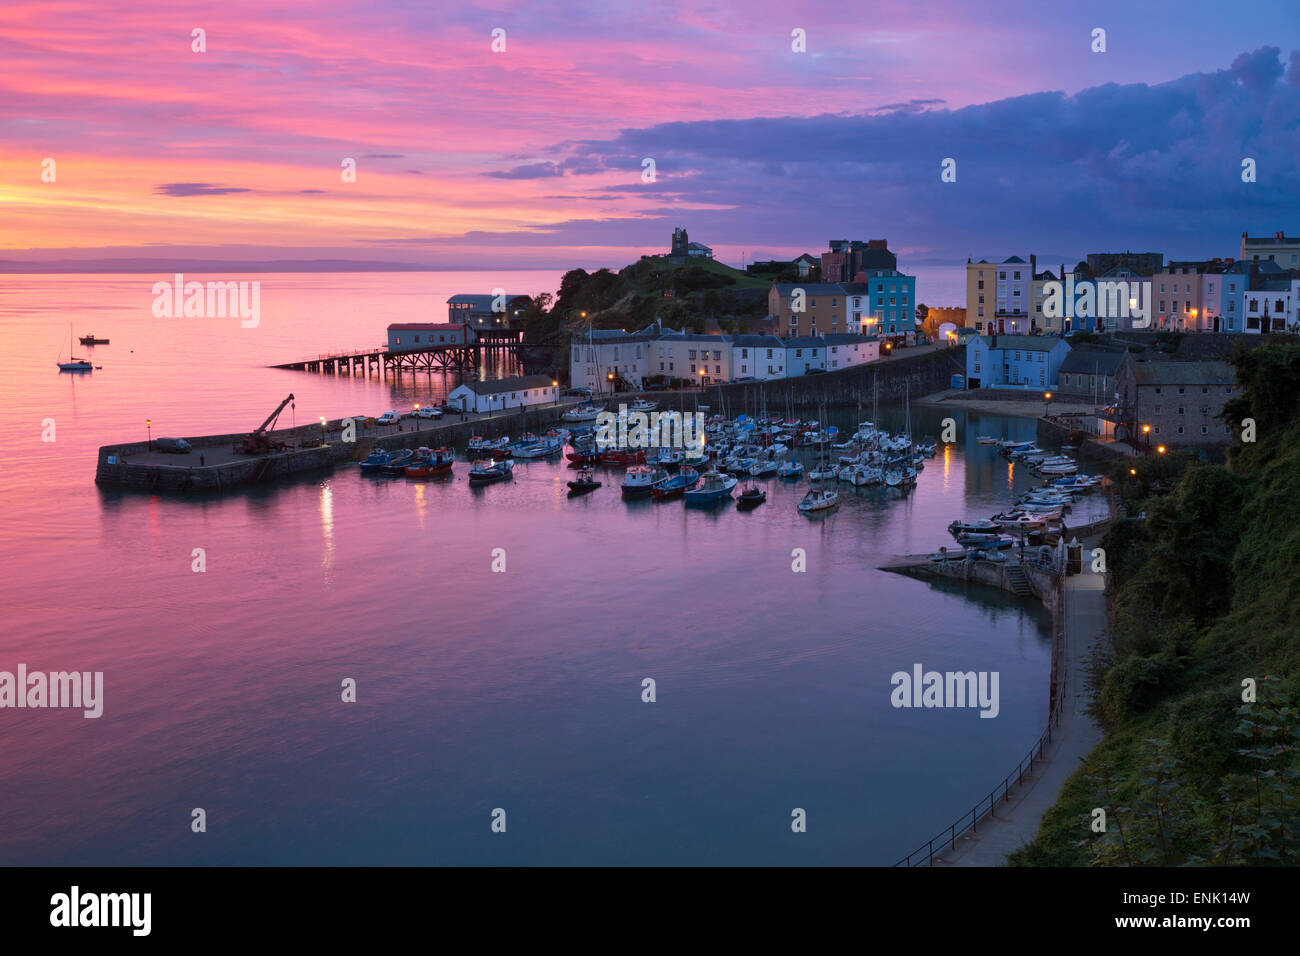 View over harbour and castle at dawn, Tenby, Carmarthen Bay, Pembrokeshire, Wales, United Kingdom, Europe - Stock Image